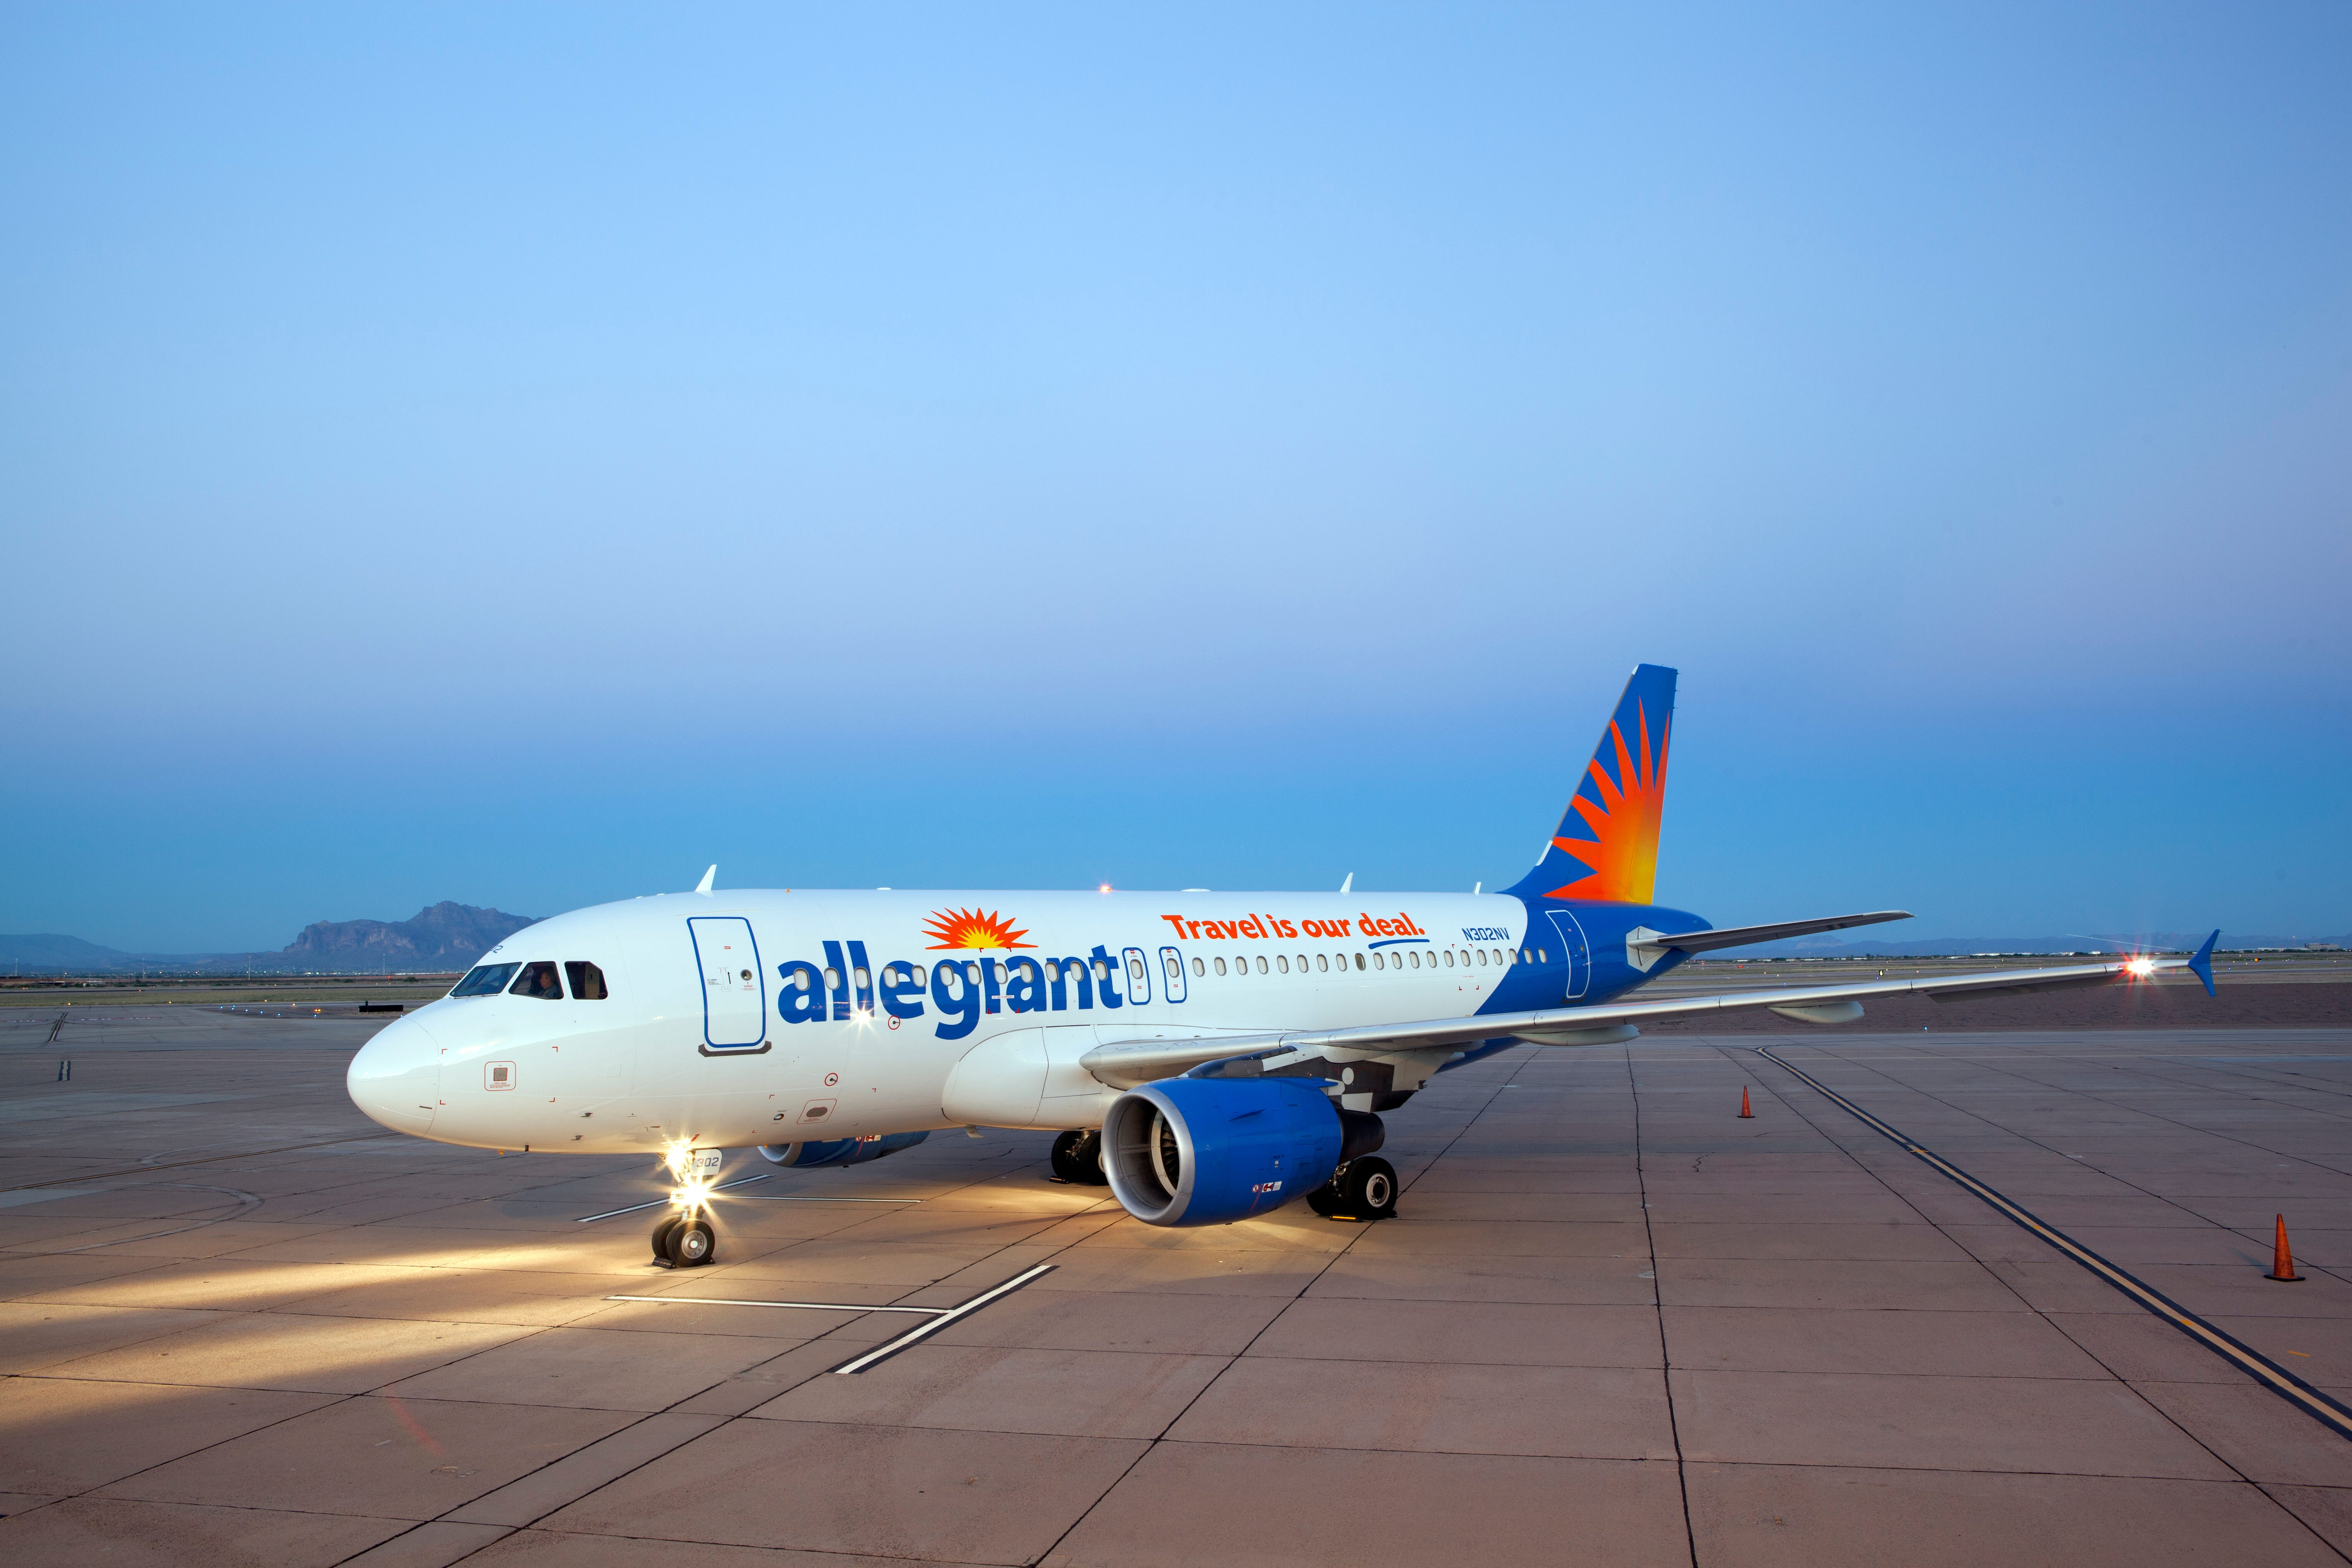 Allegiant announces 19 new routes; big winners are Florida Panhandle and Nashville